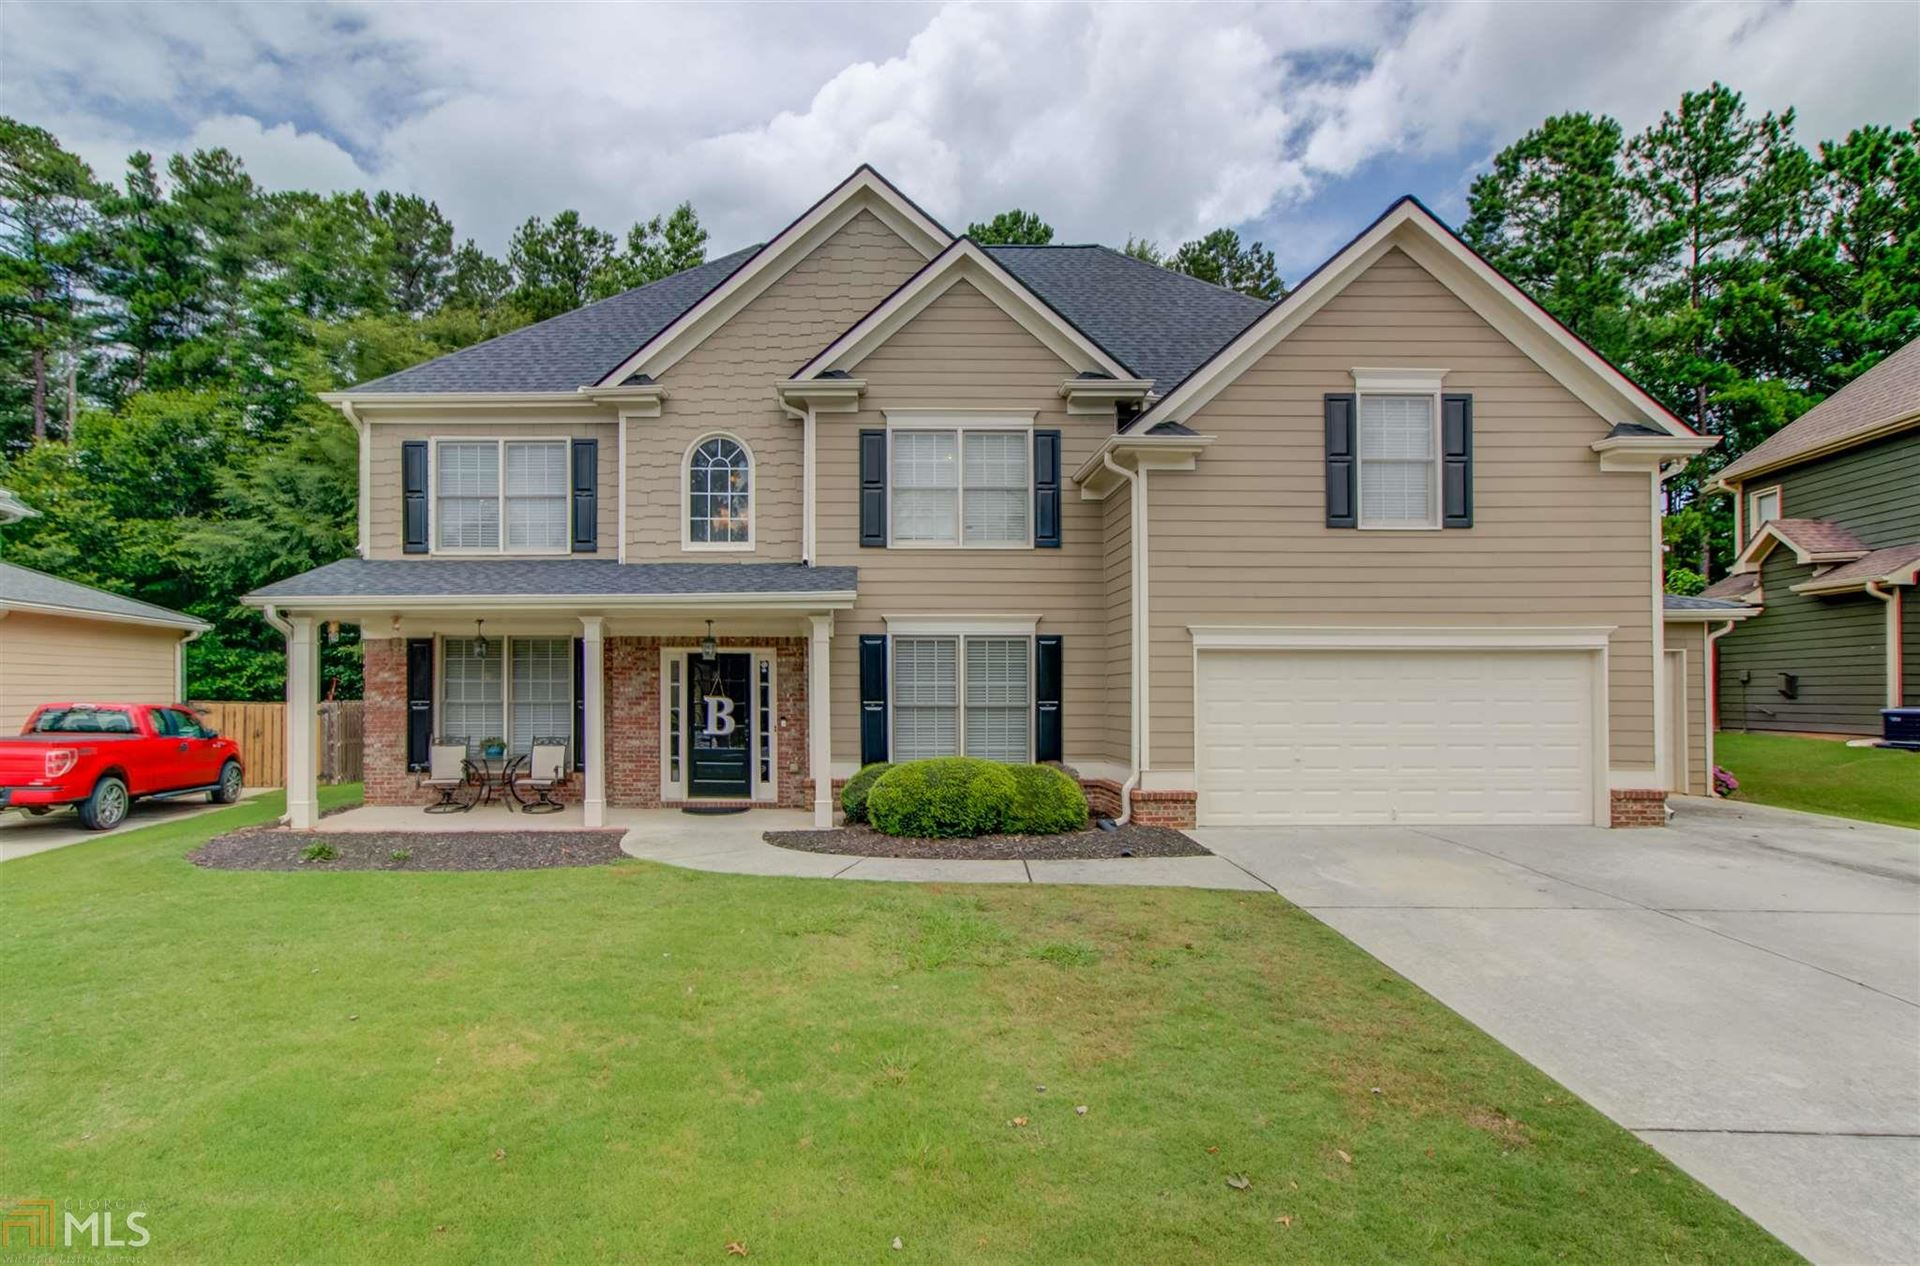 2786 Captain Ct, Dacula, GA 30019 - MLS#: 8812220